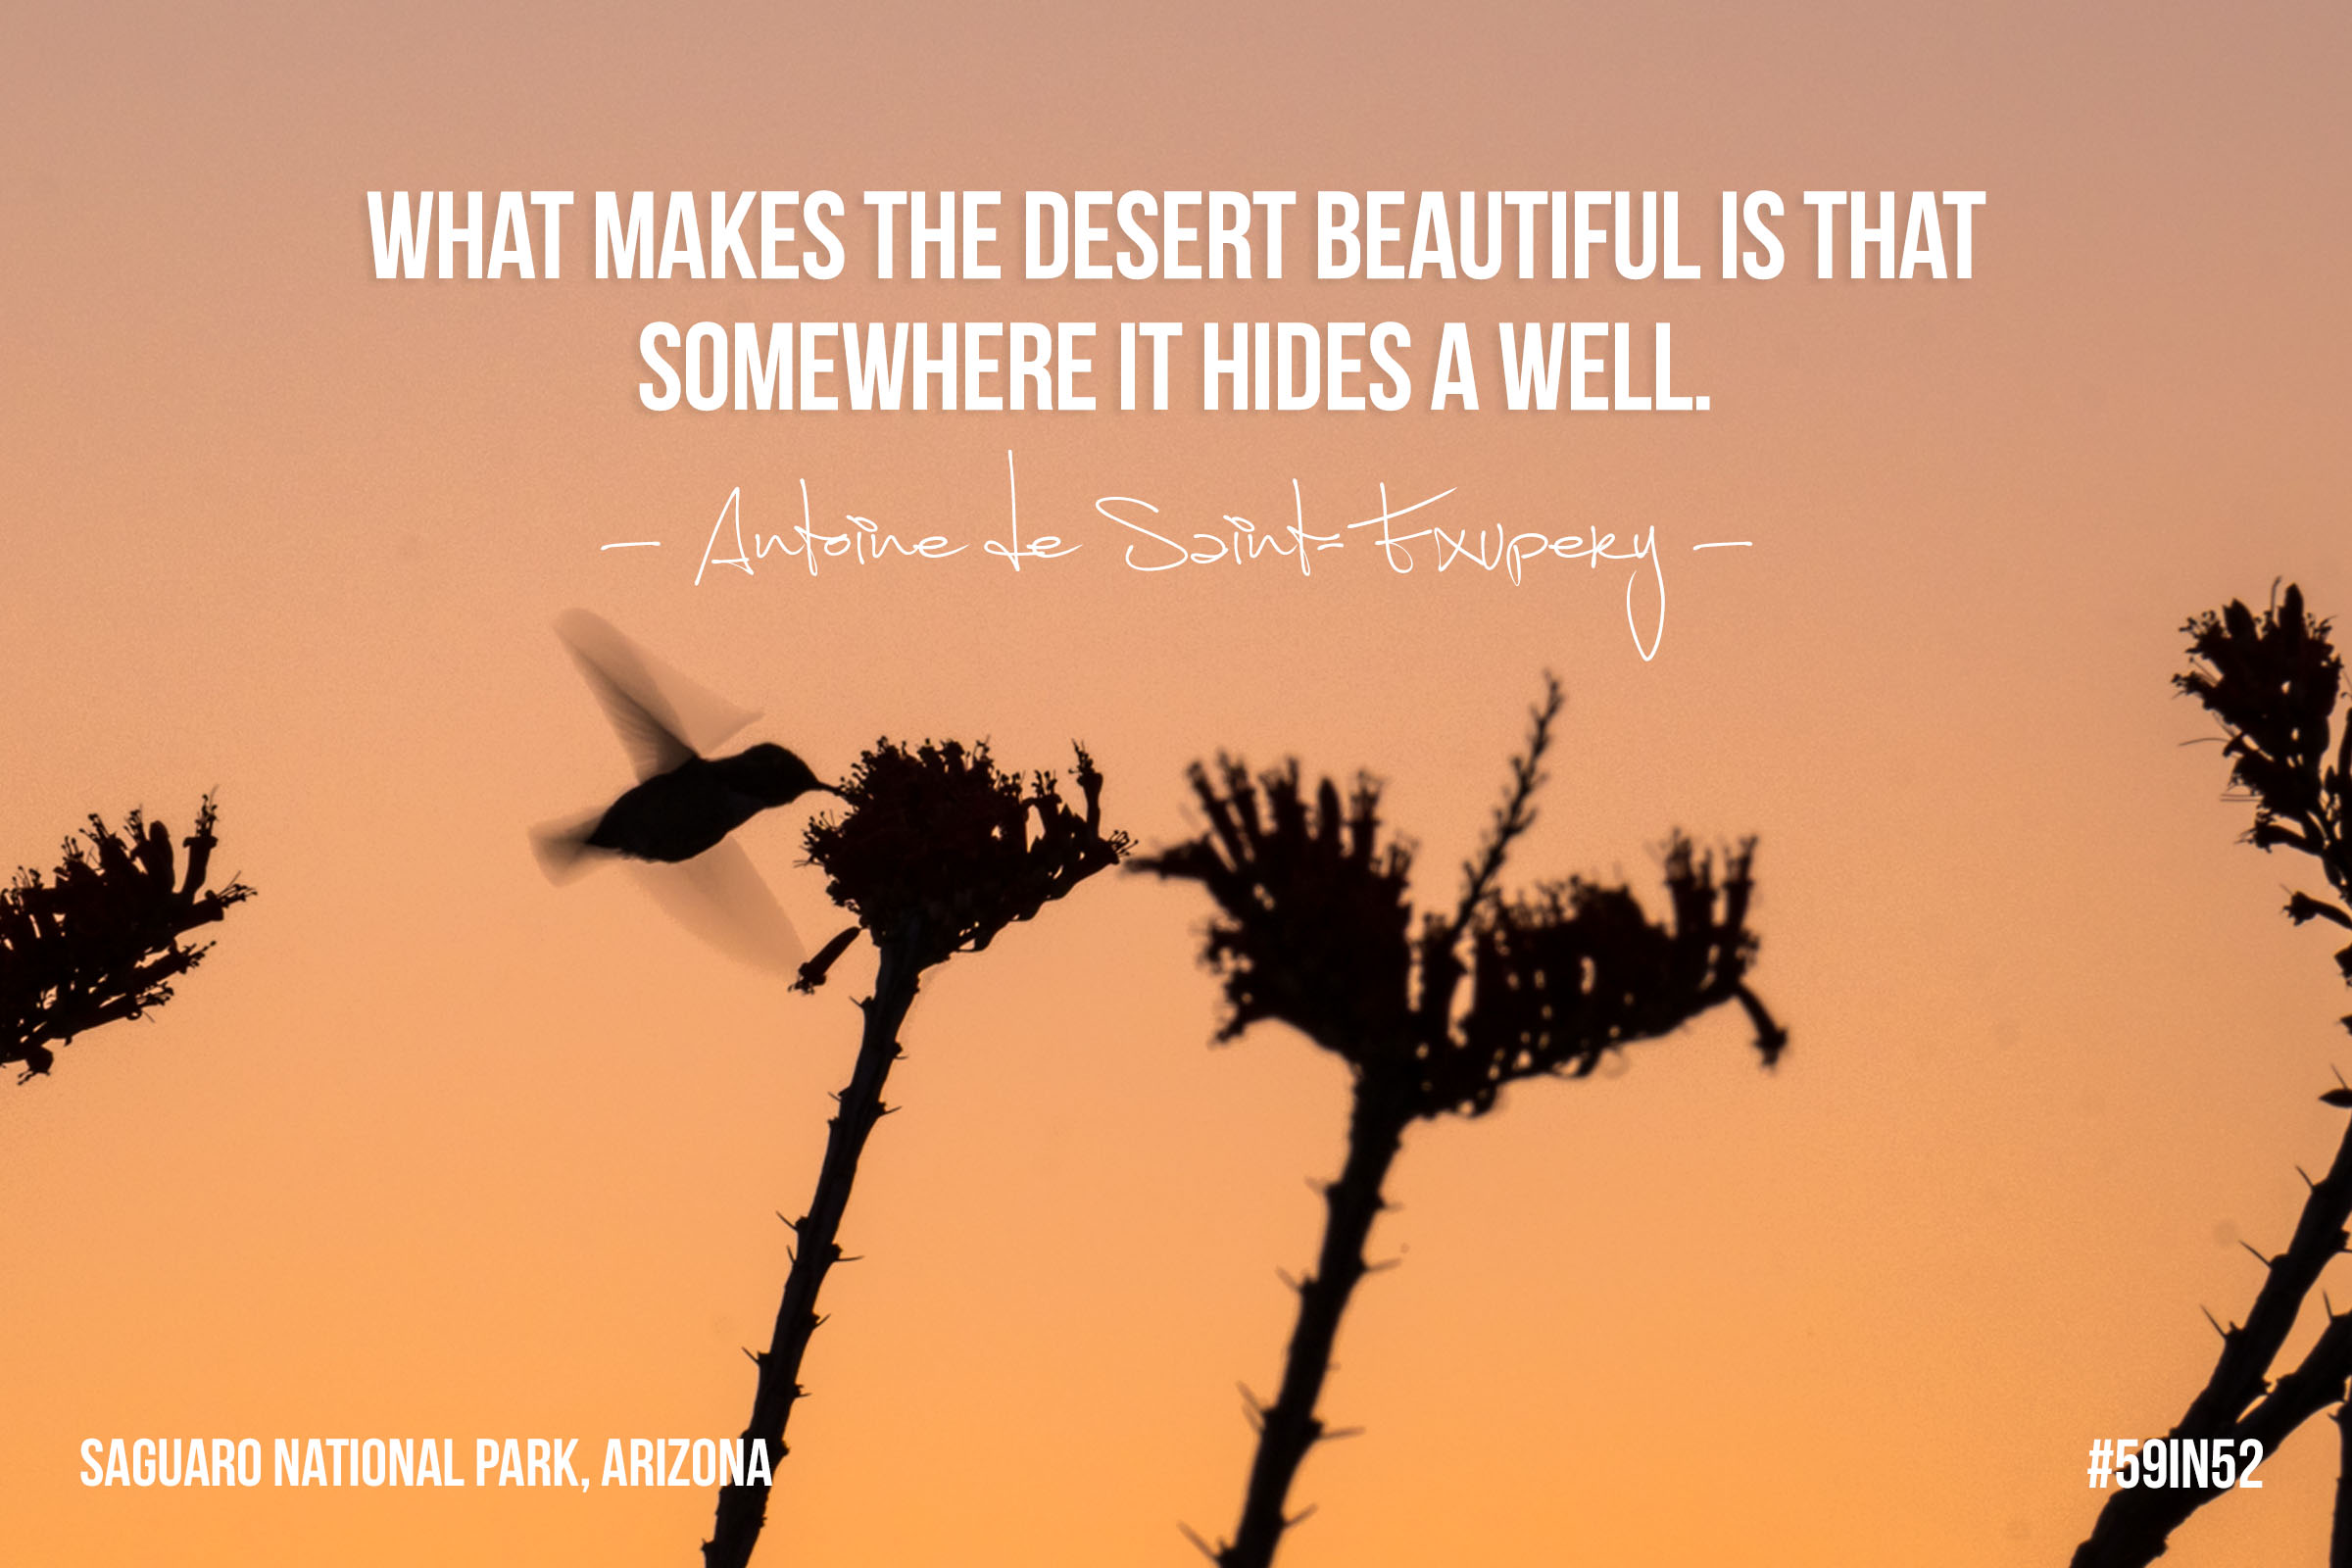 """What makes the desert beautiful is that somewhere it hides a well."" - Antoine de Saint Exupery"